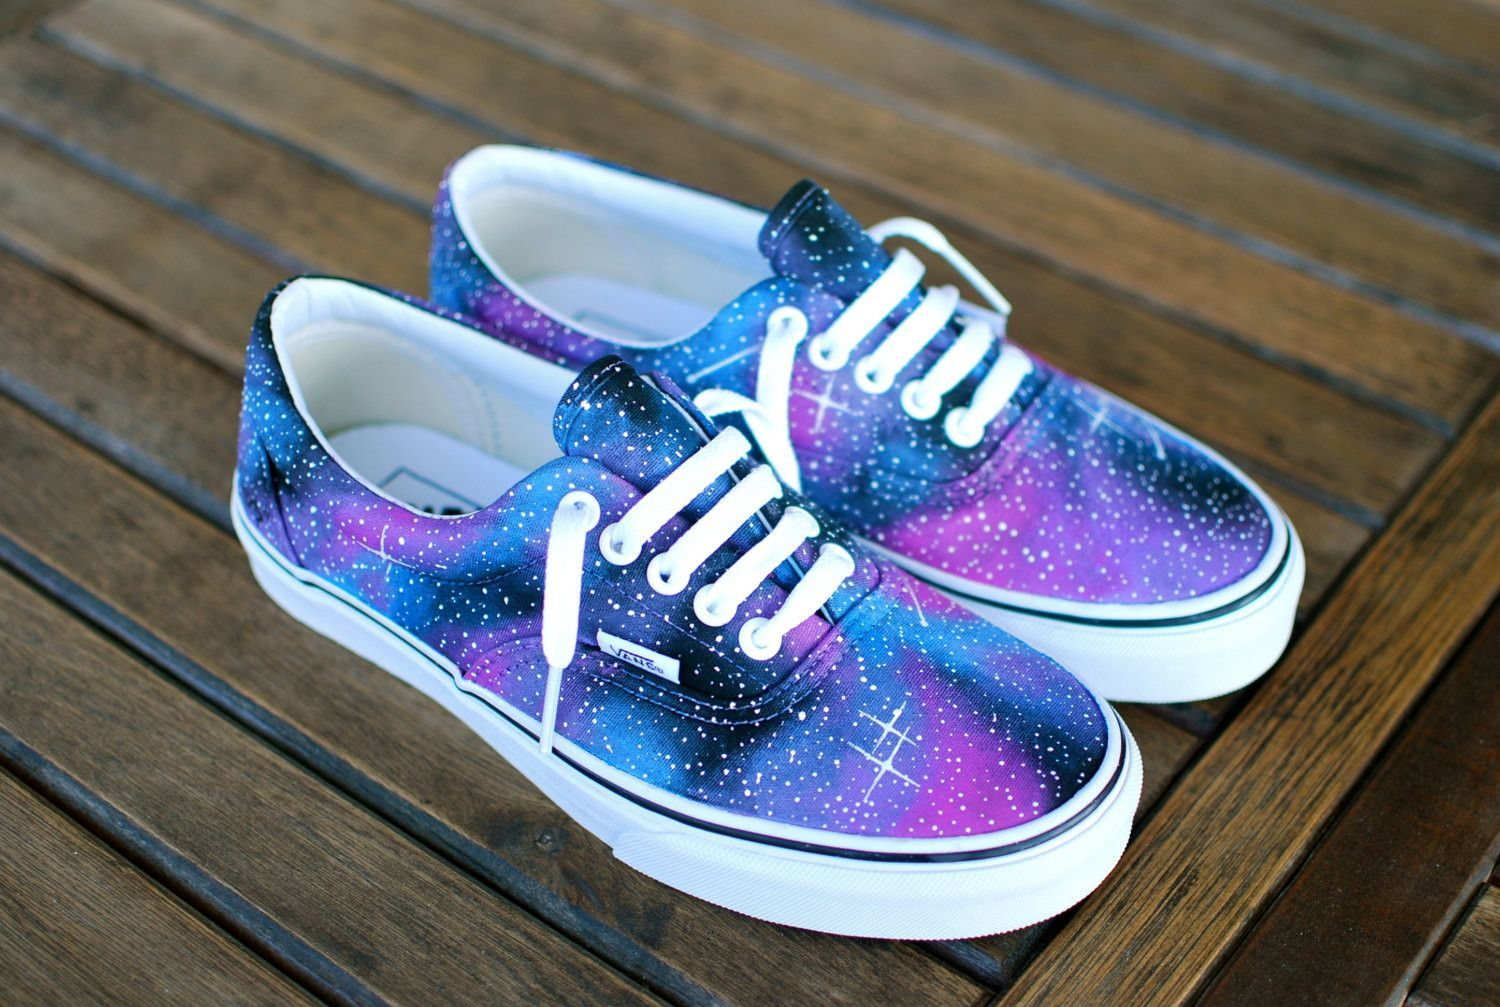 These one of a kind hand painted Vans Era shoes feature a